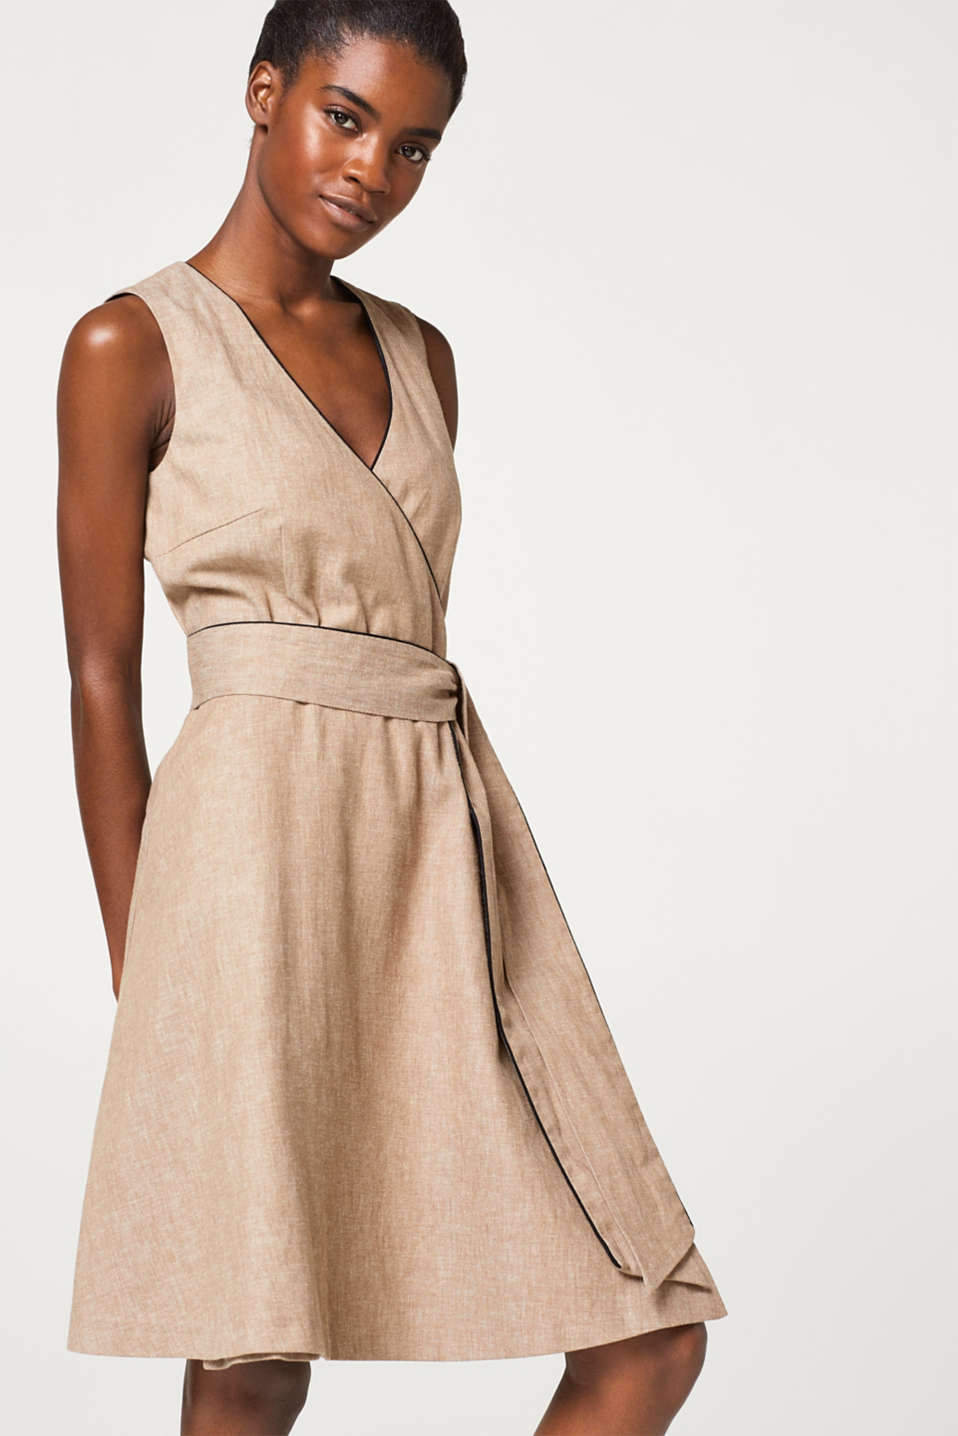 Esprit - Wrap-over dress in a firm cotton/linen blend